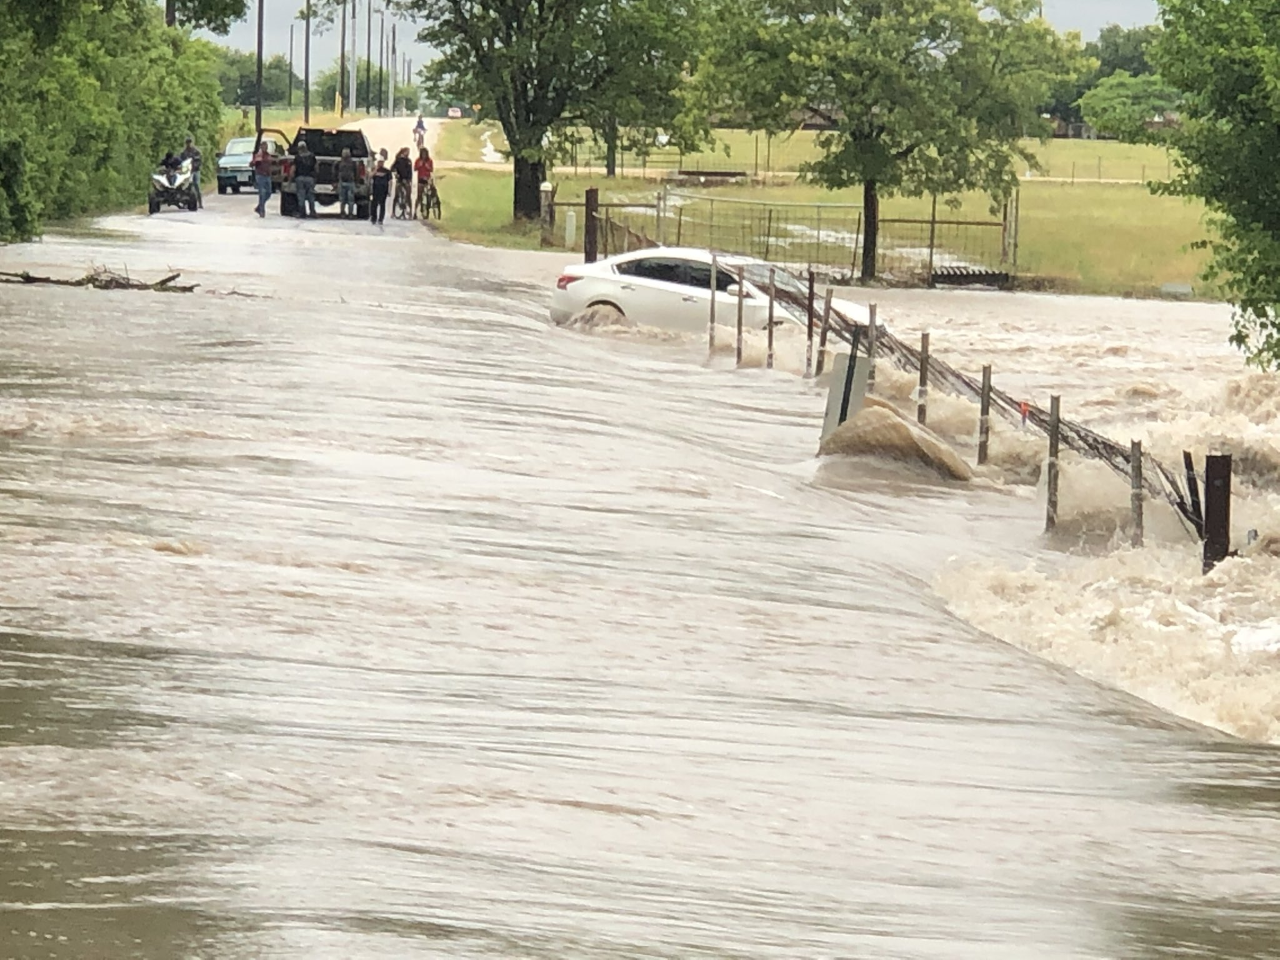 A car was swept into the water on Grist Mill Road in Hays County May 12, 2020 (Travis County Fire Rescue Photo)